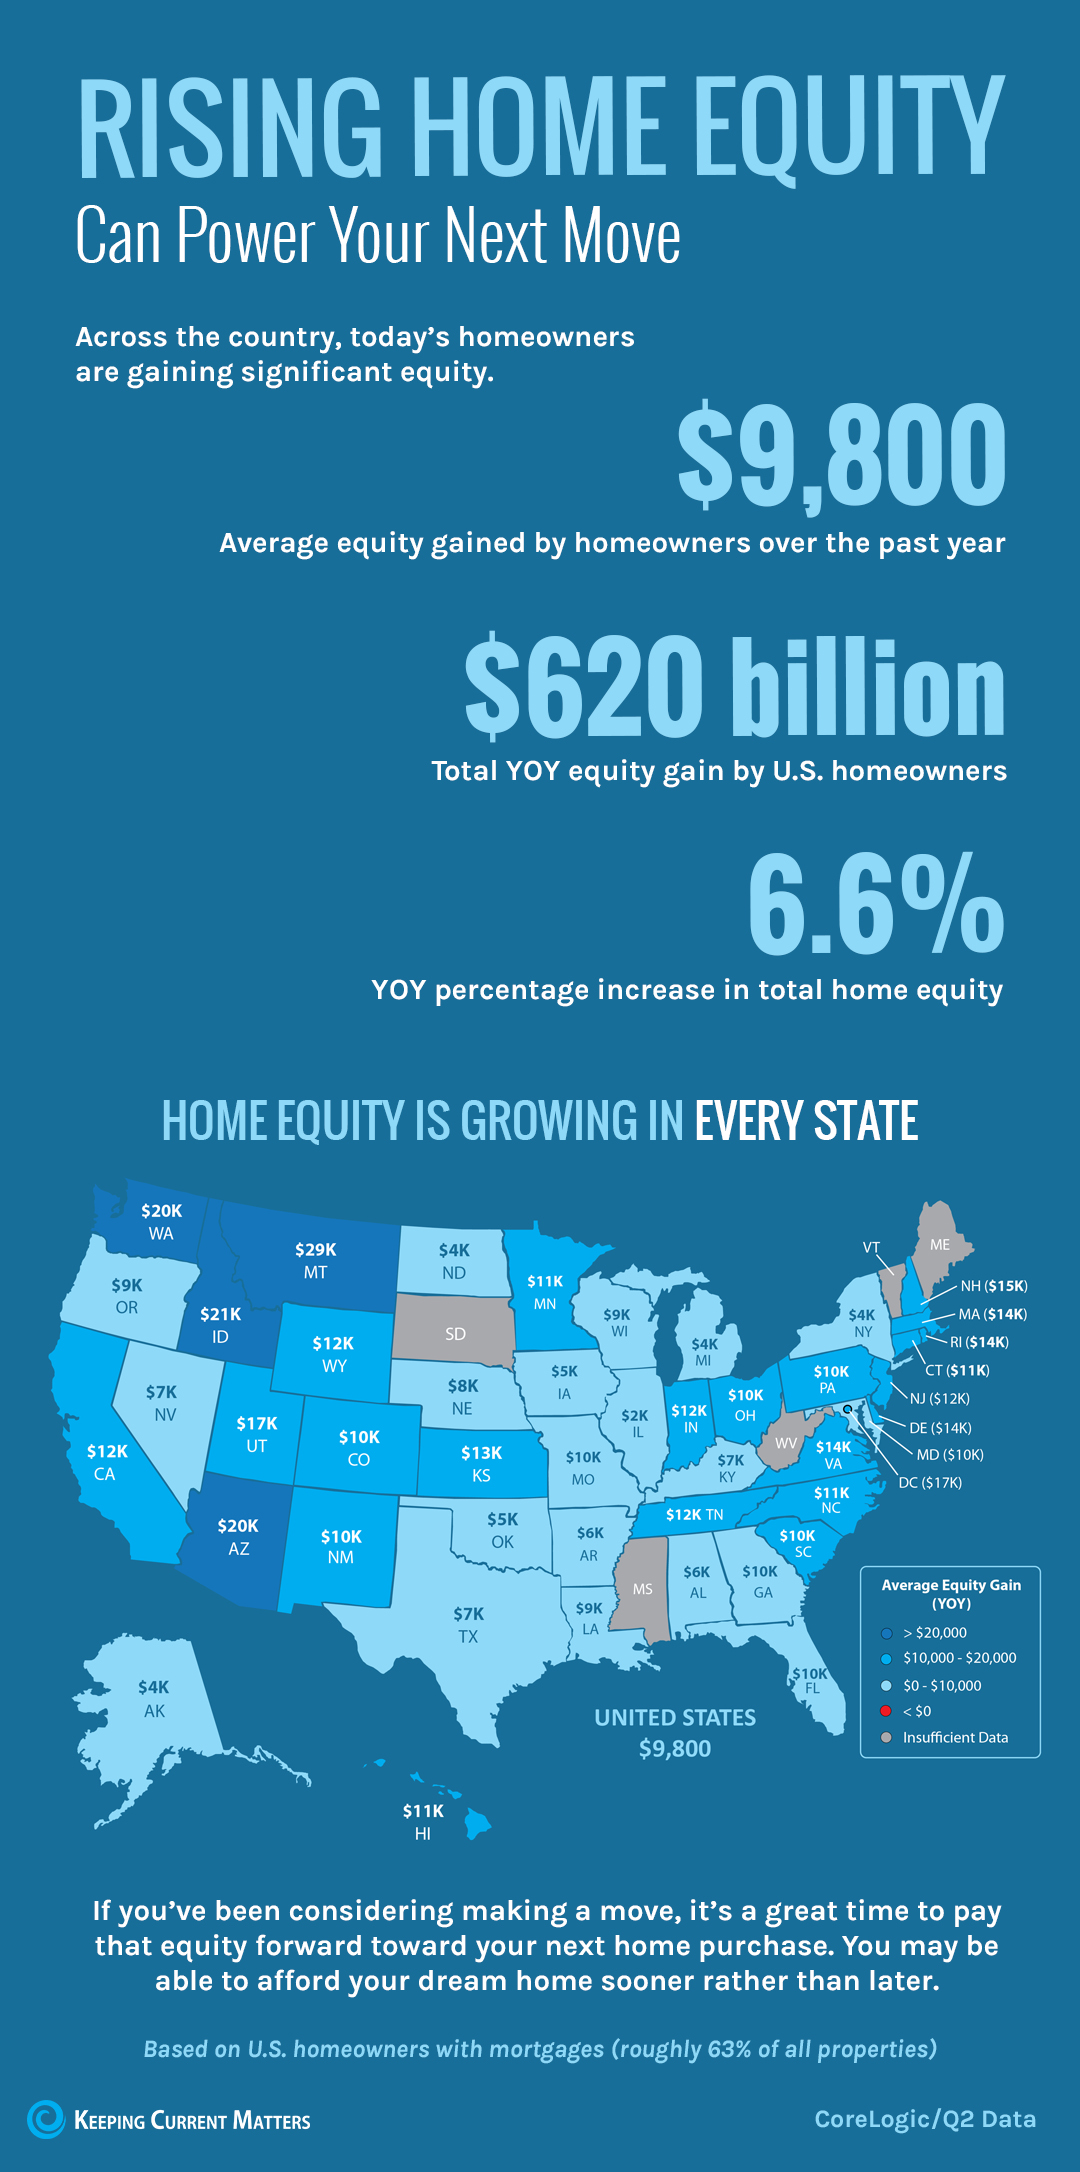 Lynne MacFarlane Homes blog - Rising Home Equity in Every State